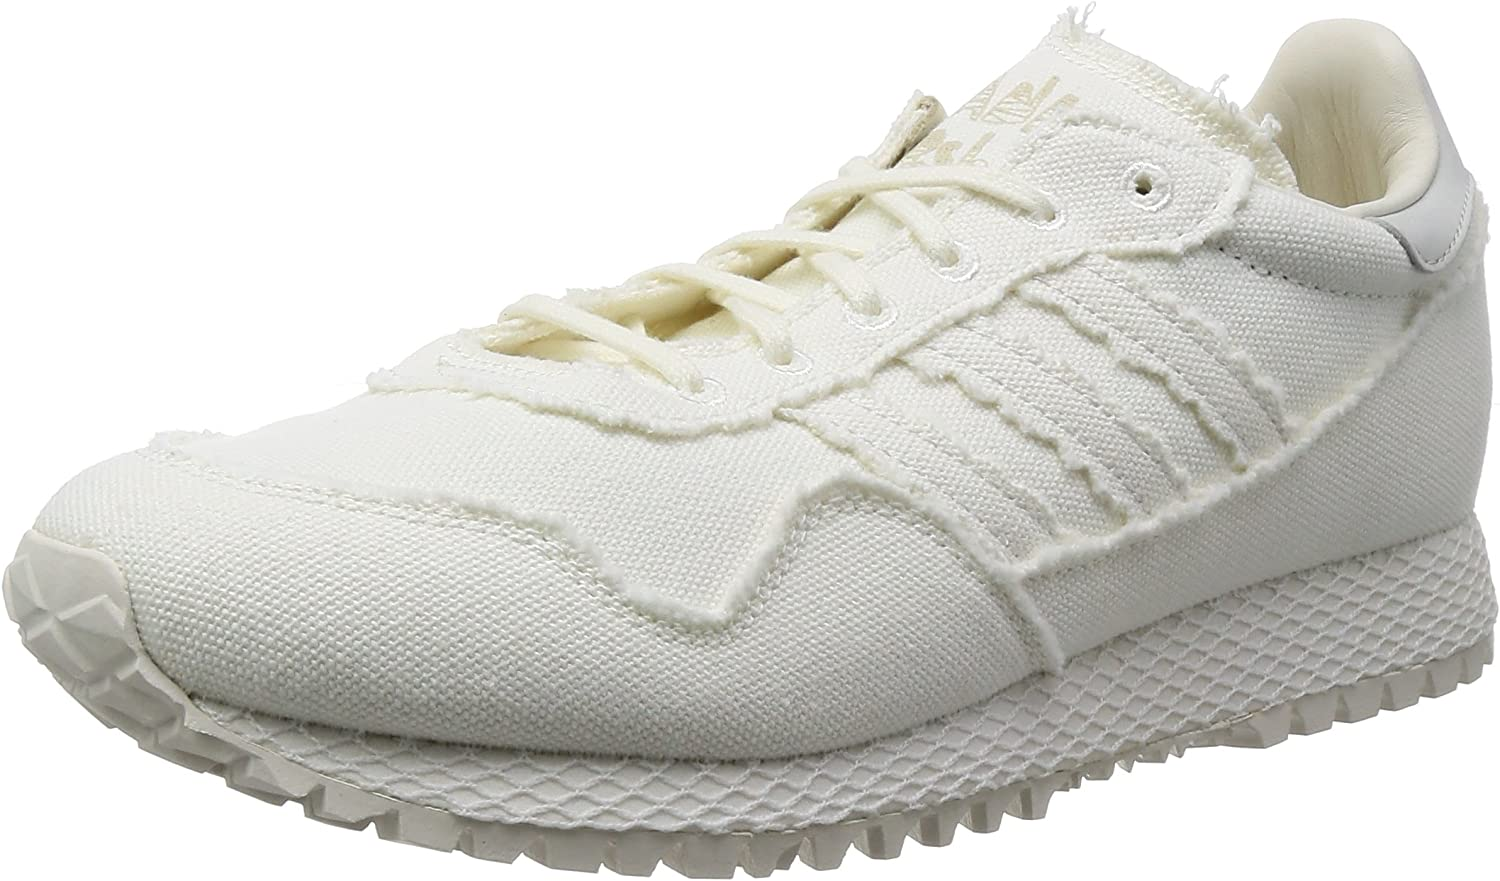 Adidas New York Past Arsham